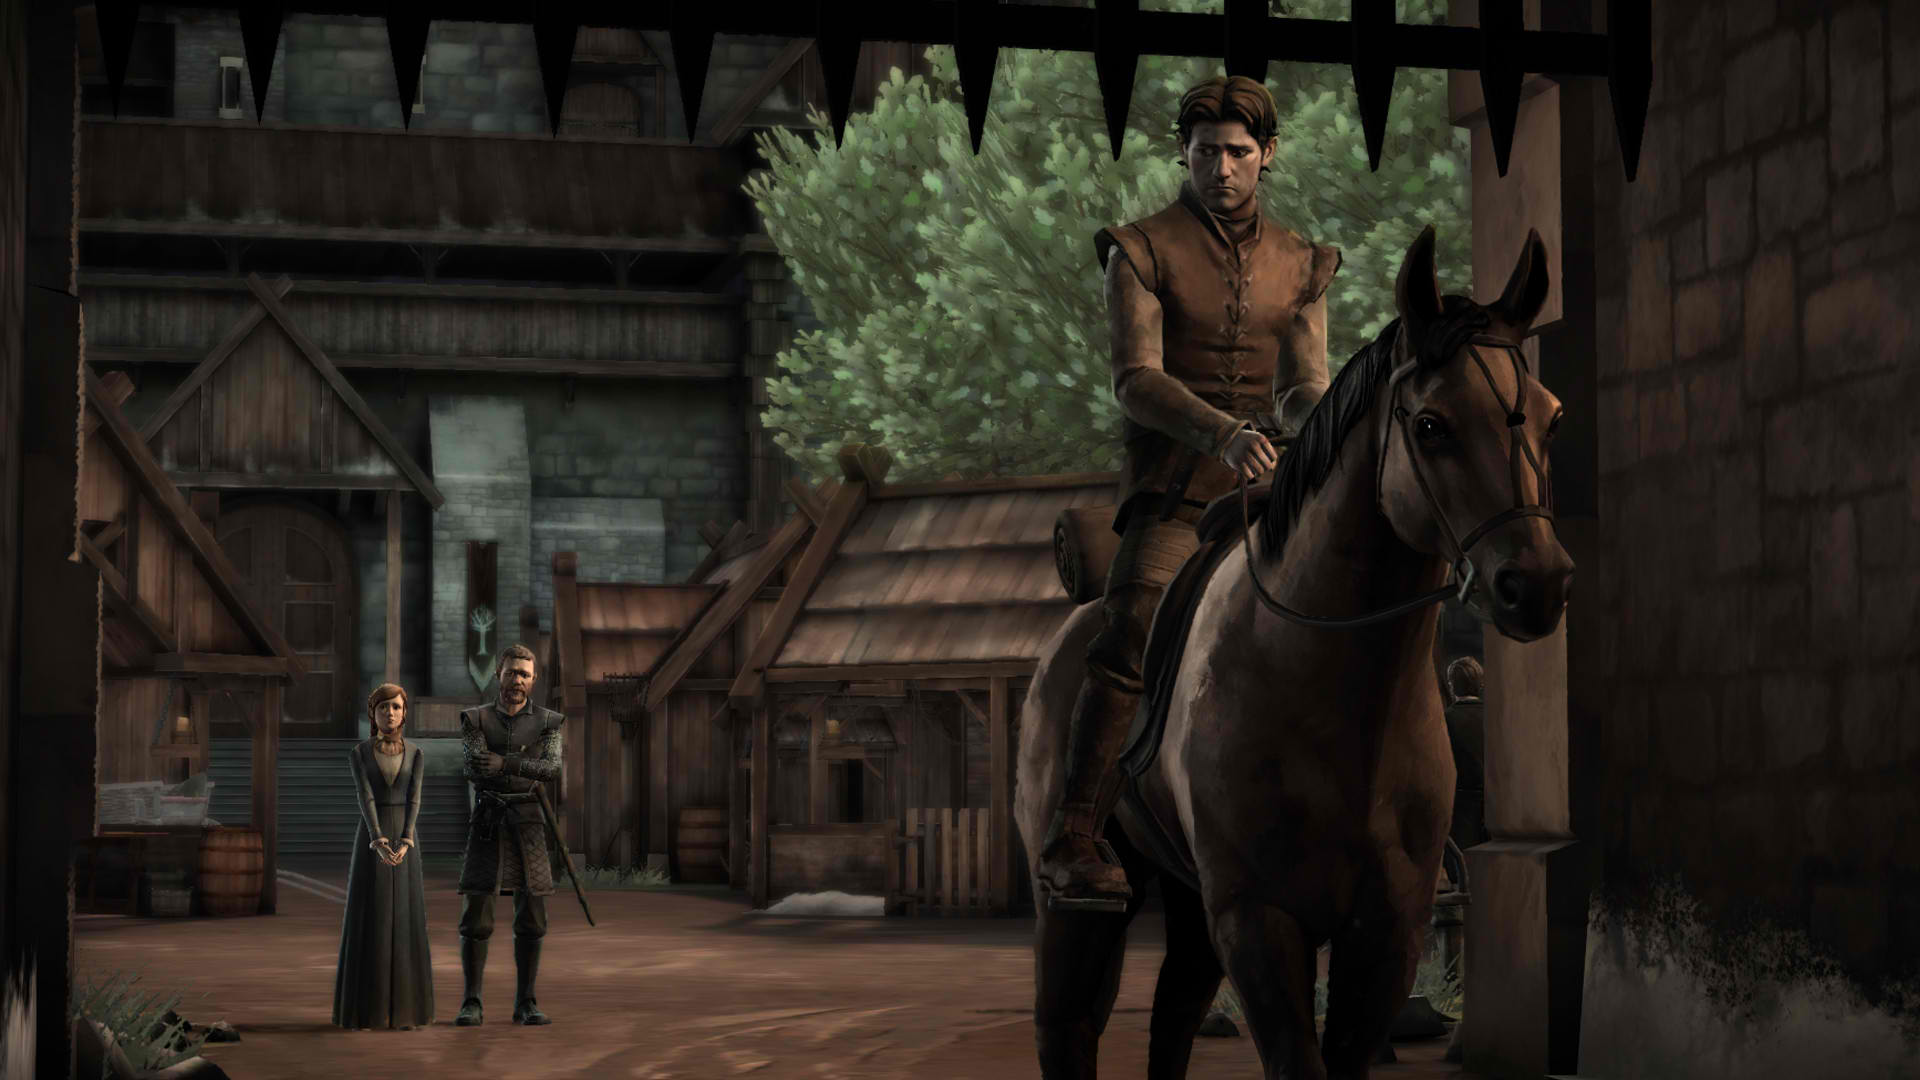 Game of Thrones - Gared on a Horse